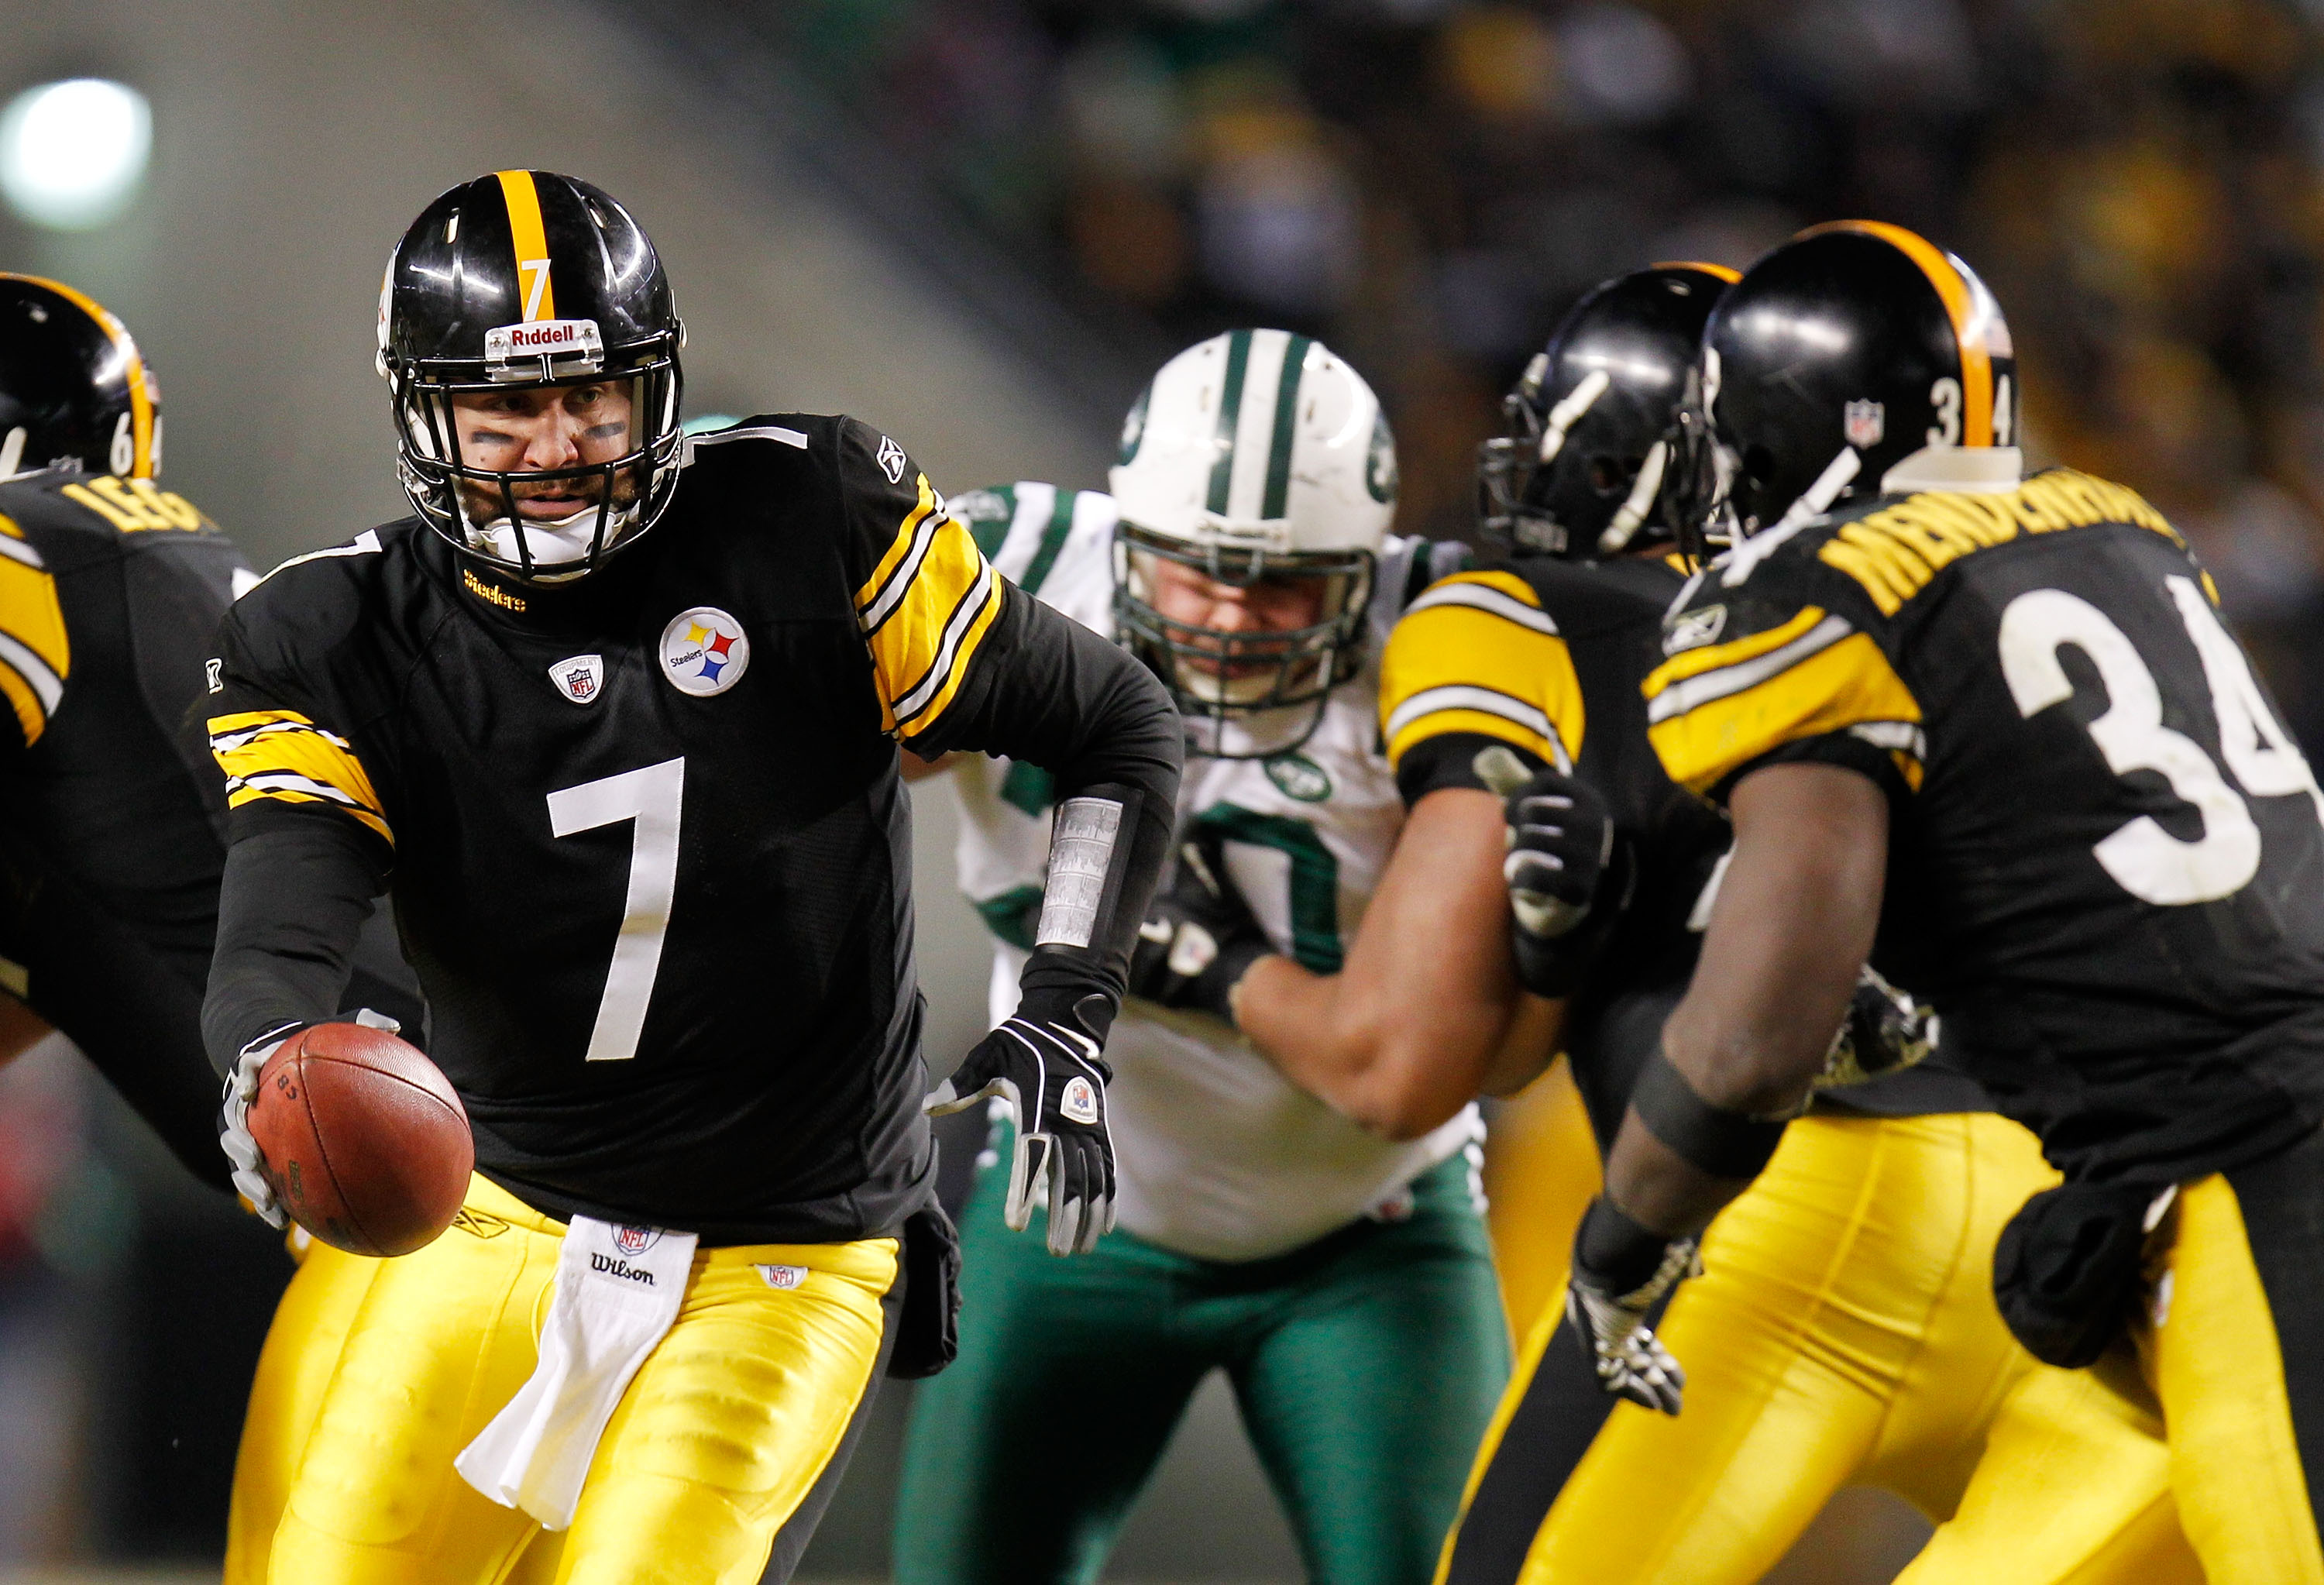 PITTSBURGH, PA - JANUARY 23:  Ben Roethlisberger #7 of the Pittsburgh Steelers drops back against the New York Jets during the 2011 AFC Championship game at Heinz Field on January 23, 2011 in Pittsburgh, Pennsylvania.  (Photo by Gregory Shamus/Getty Image